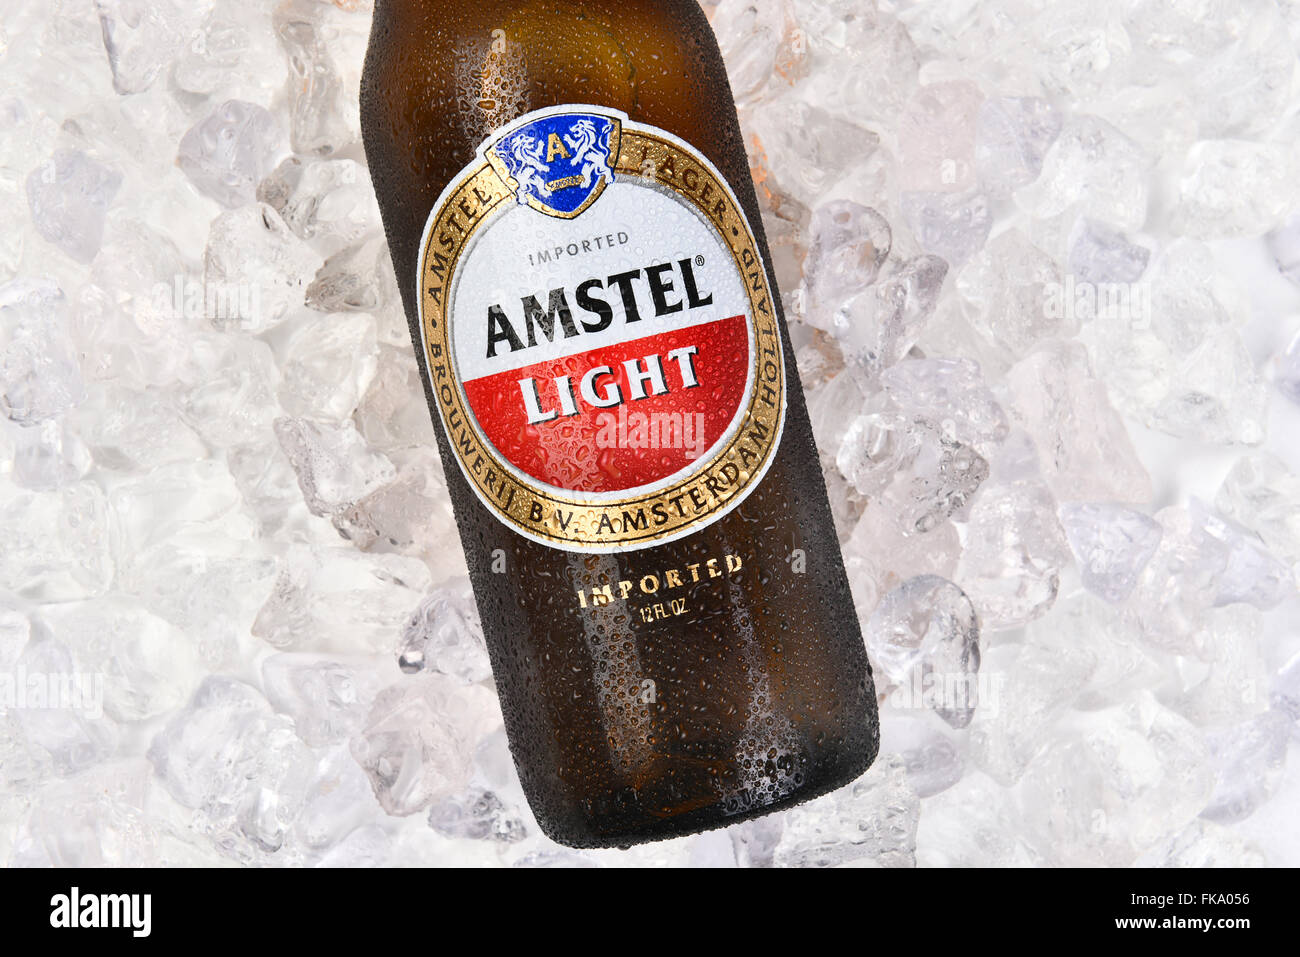 Amstel Light Bottle On A Bed Of Ice. Horizontal Format Closeup Of Label.